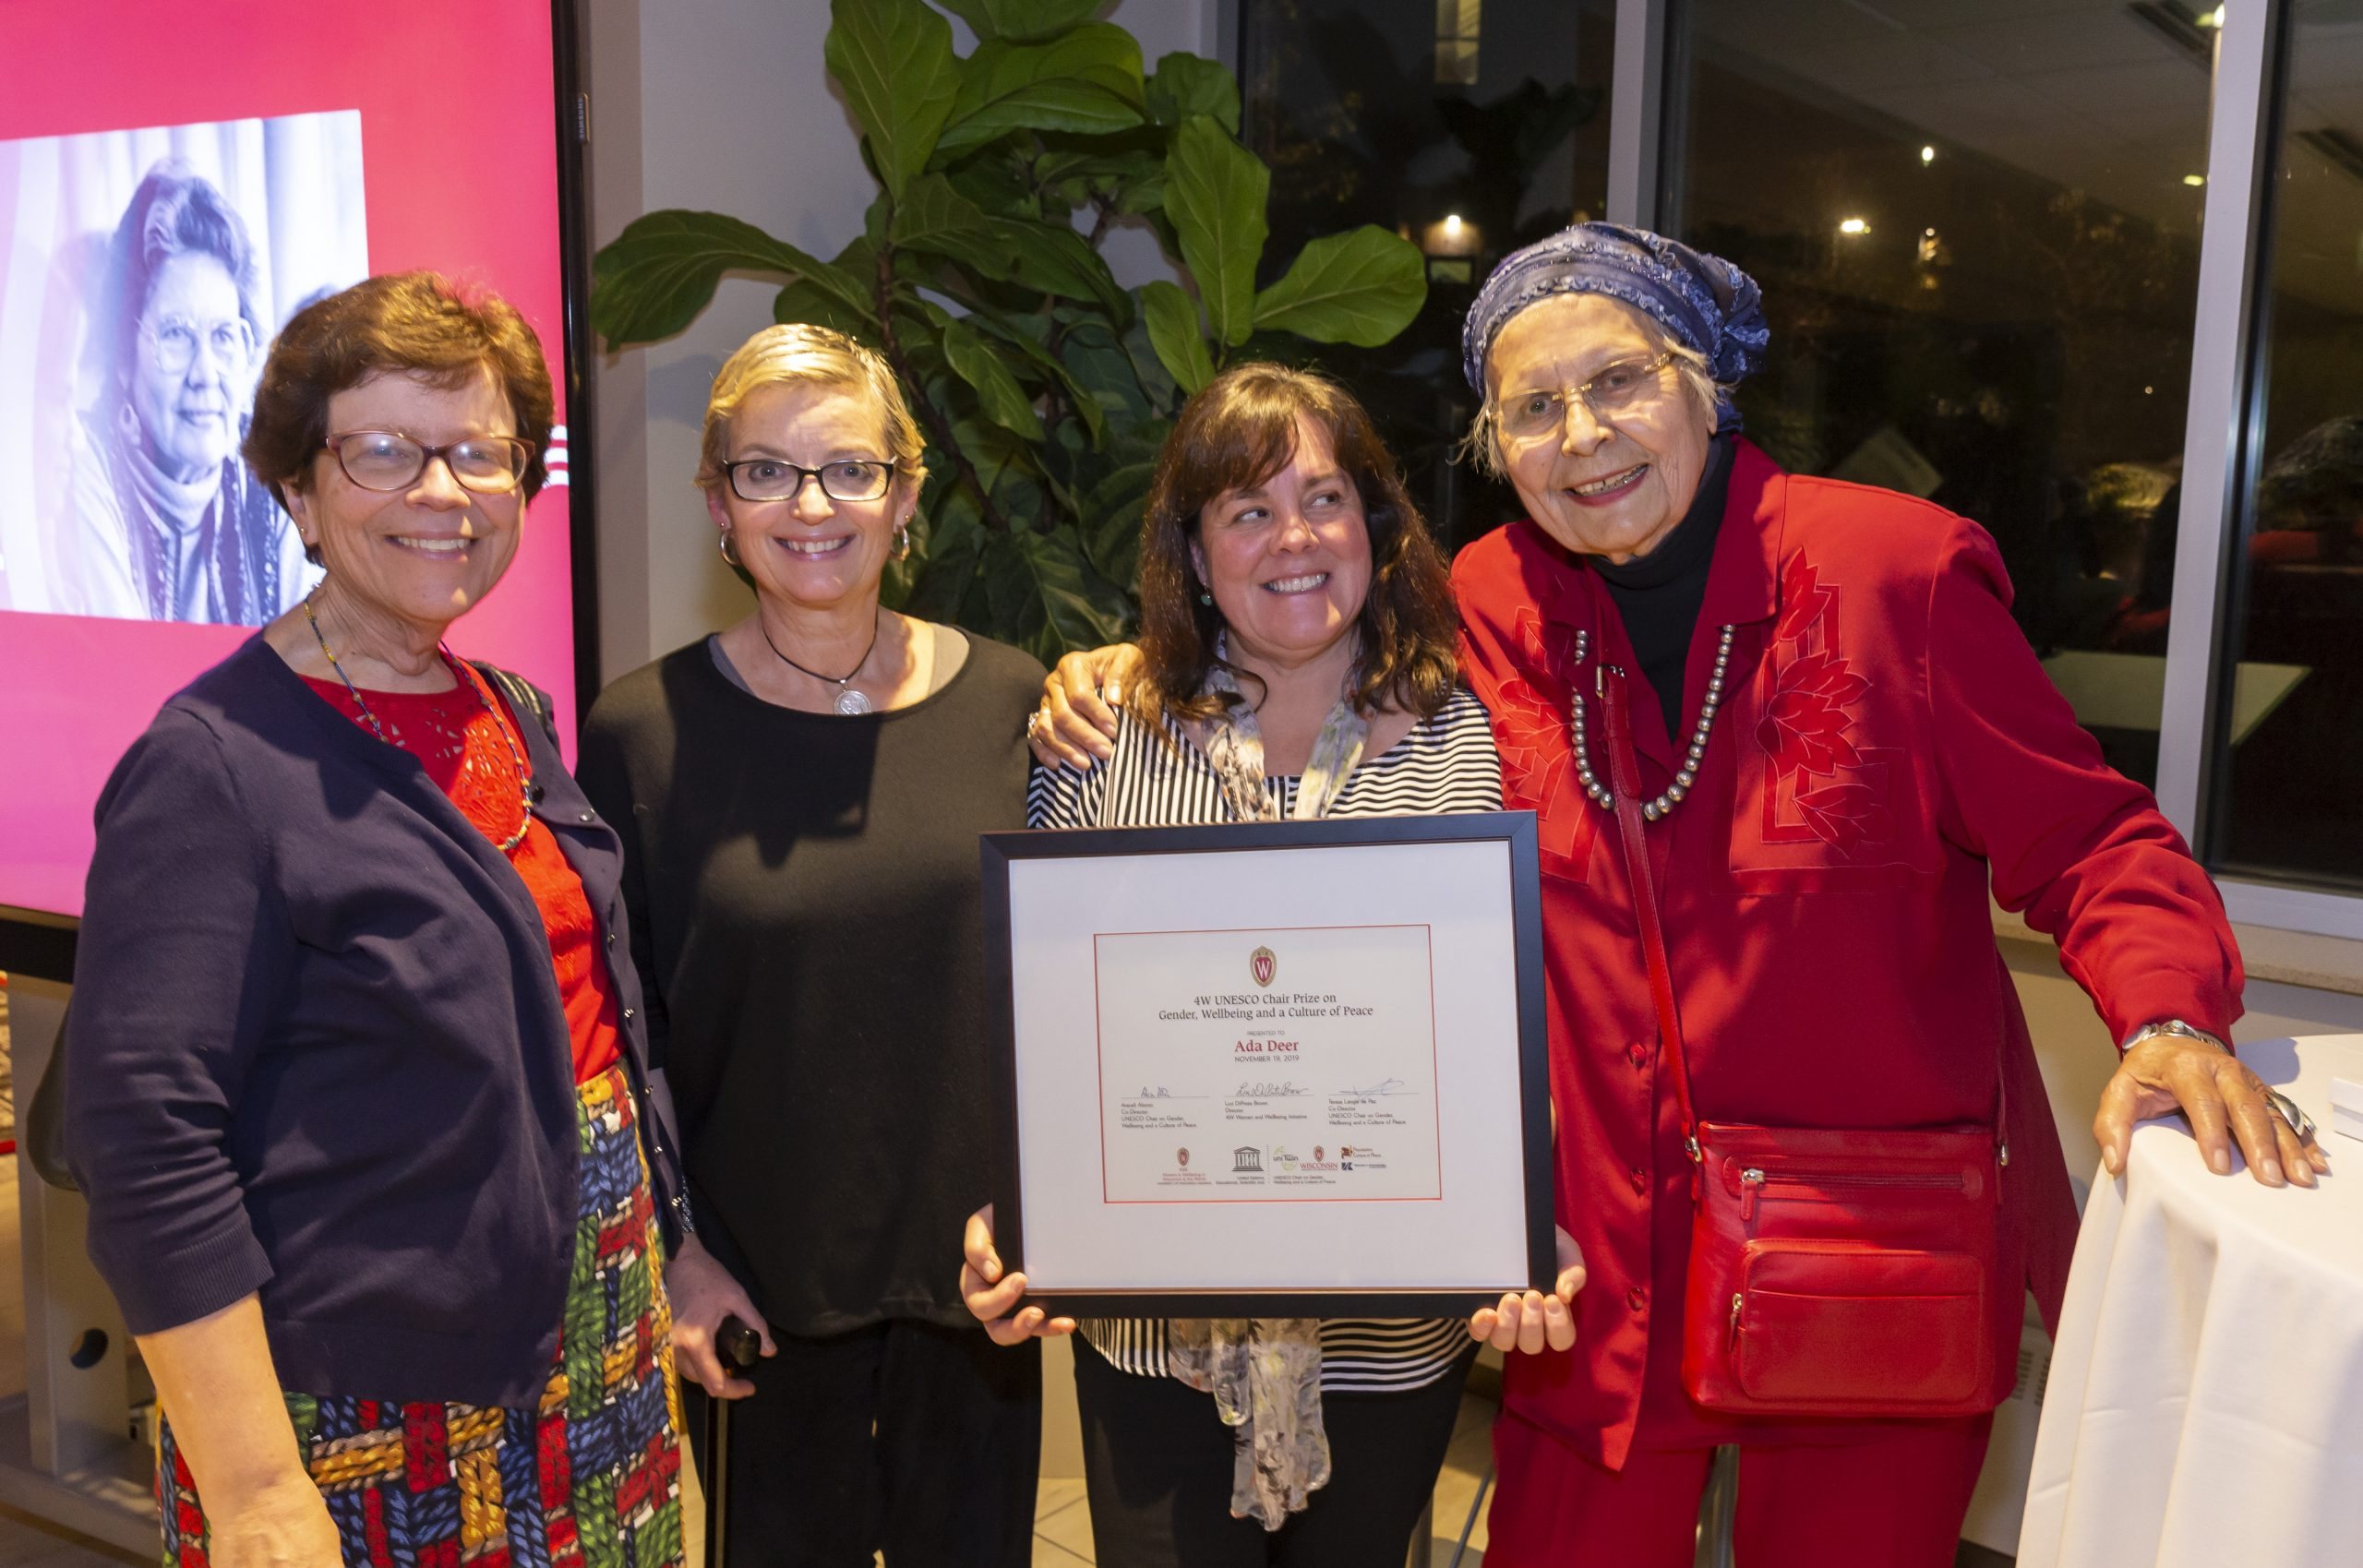 4W presents the inaugural UNESCO Chair Prize on Gender, Wellbeing, and a Culture of Peace to activist Ada Deer (November 2019).